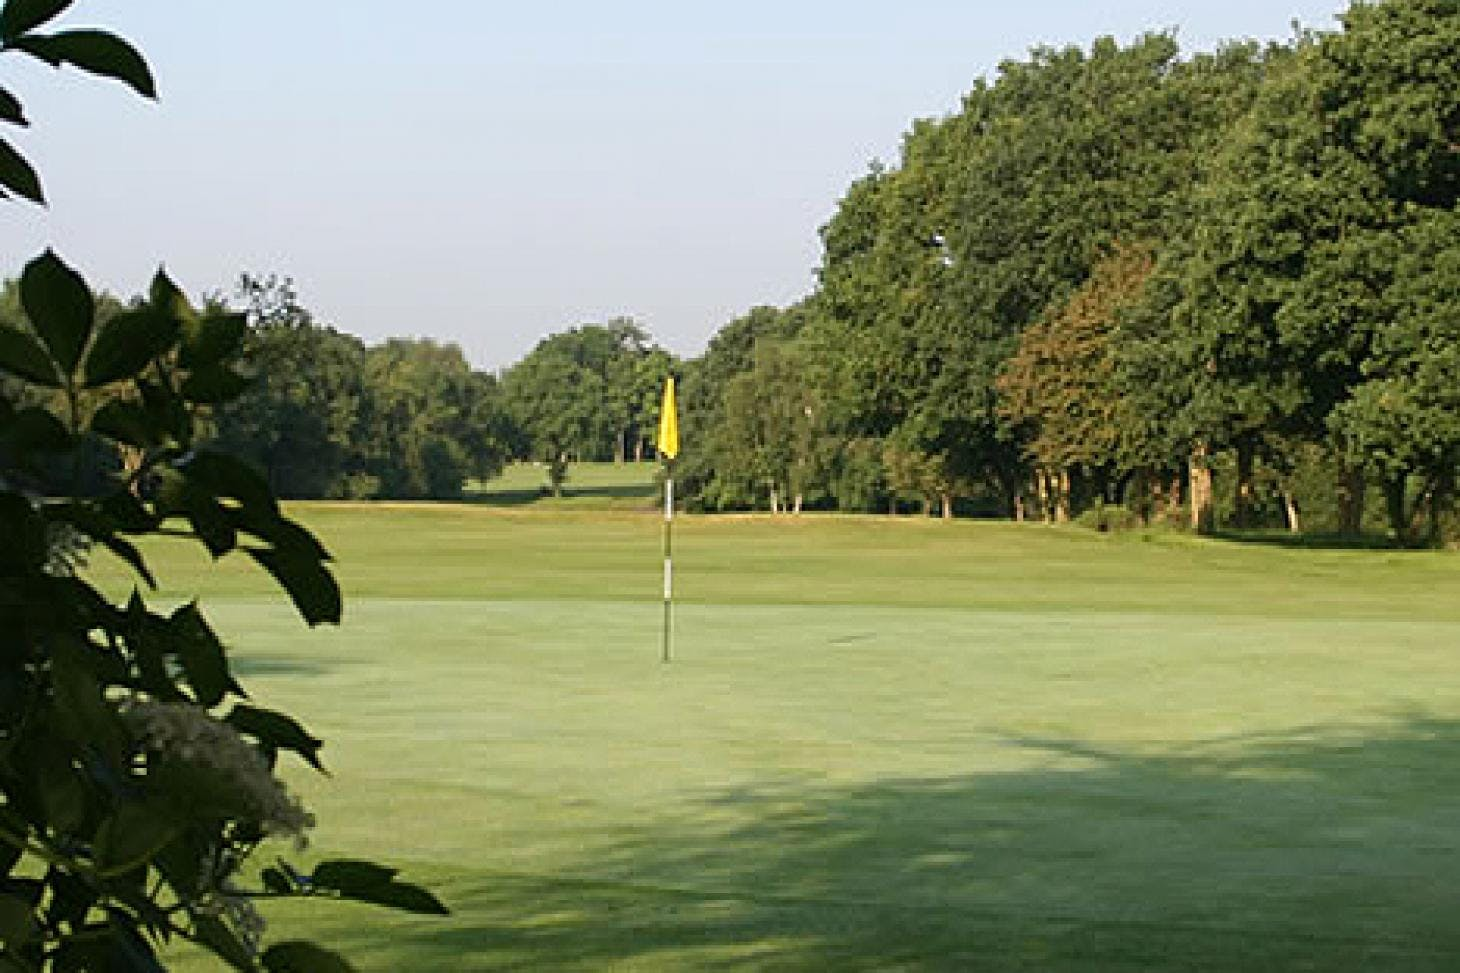 Banstead Downs Golf Club 18 hole golf course